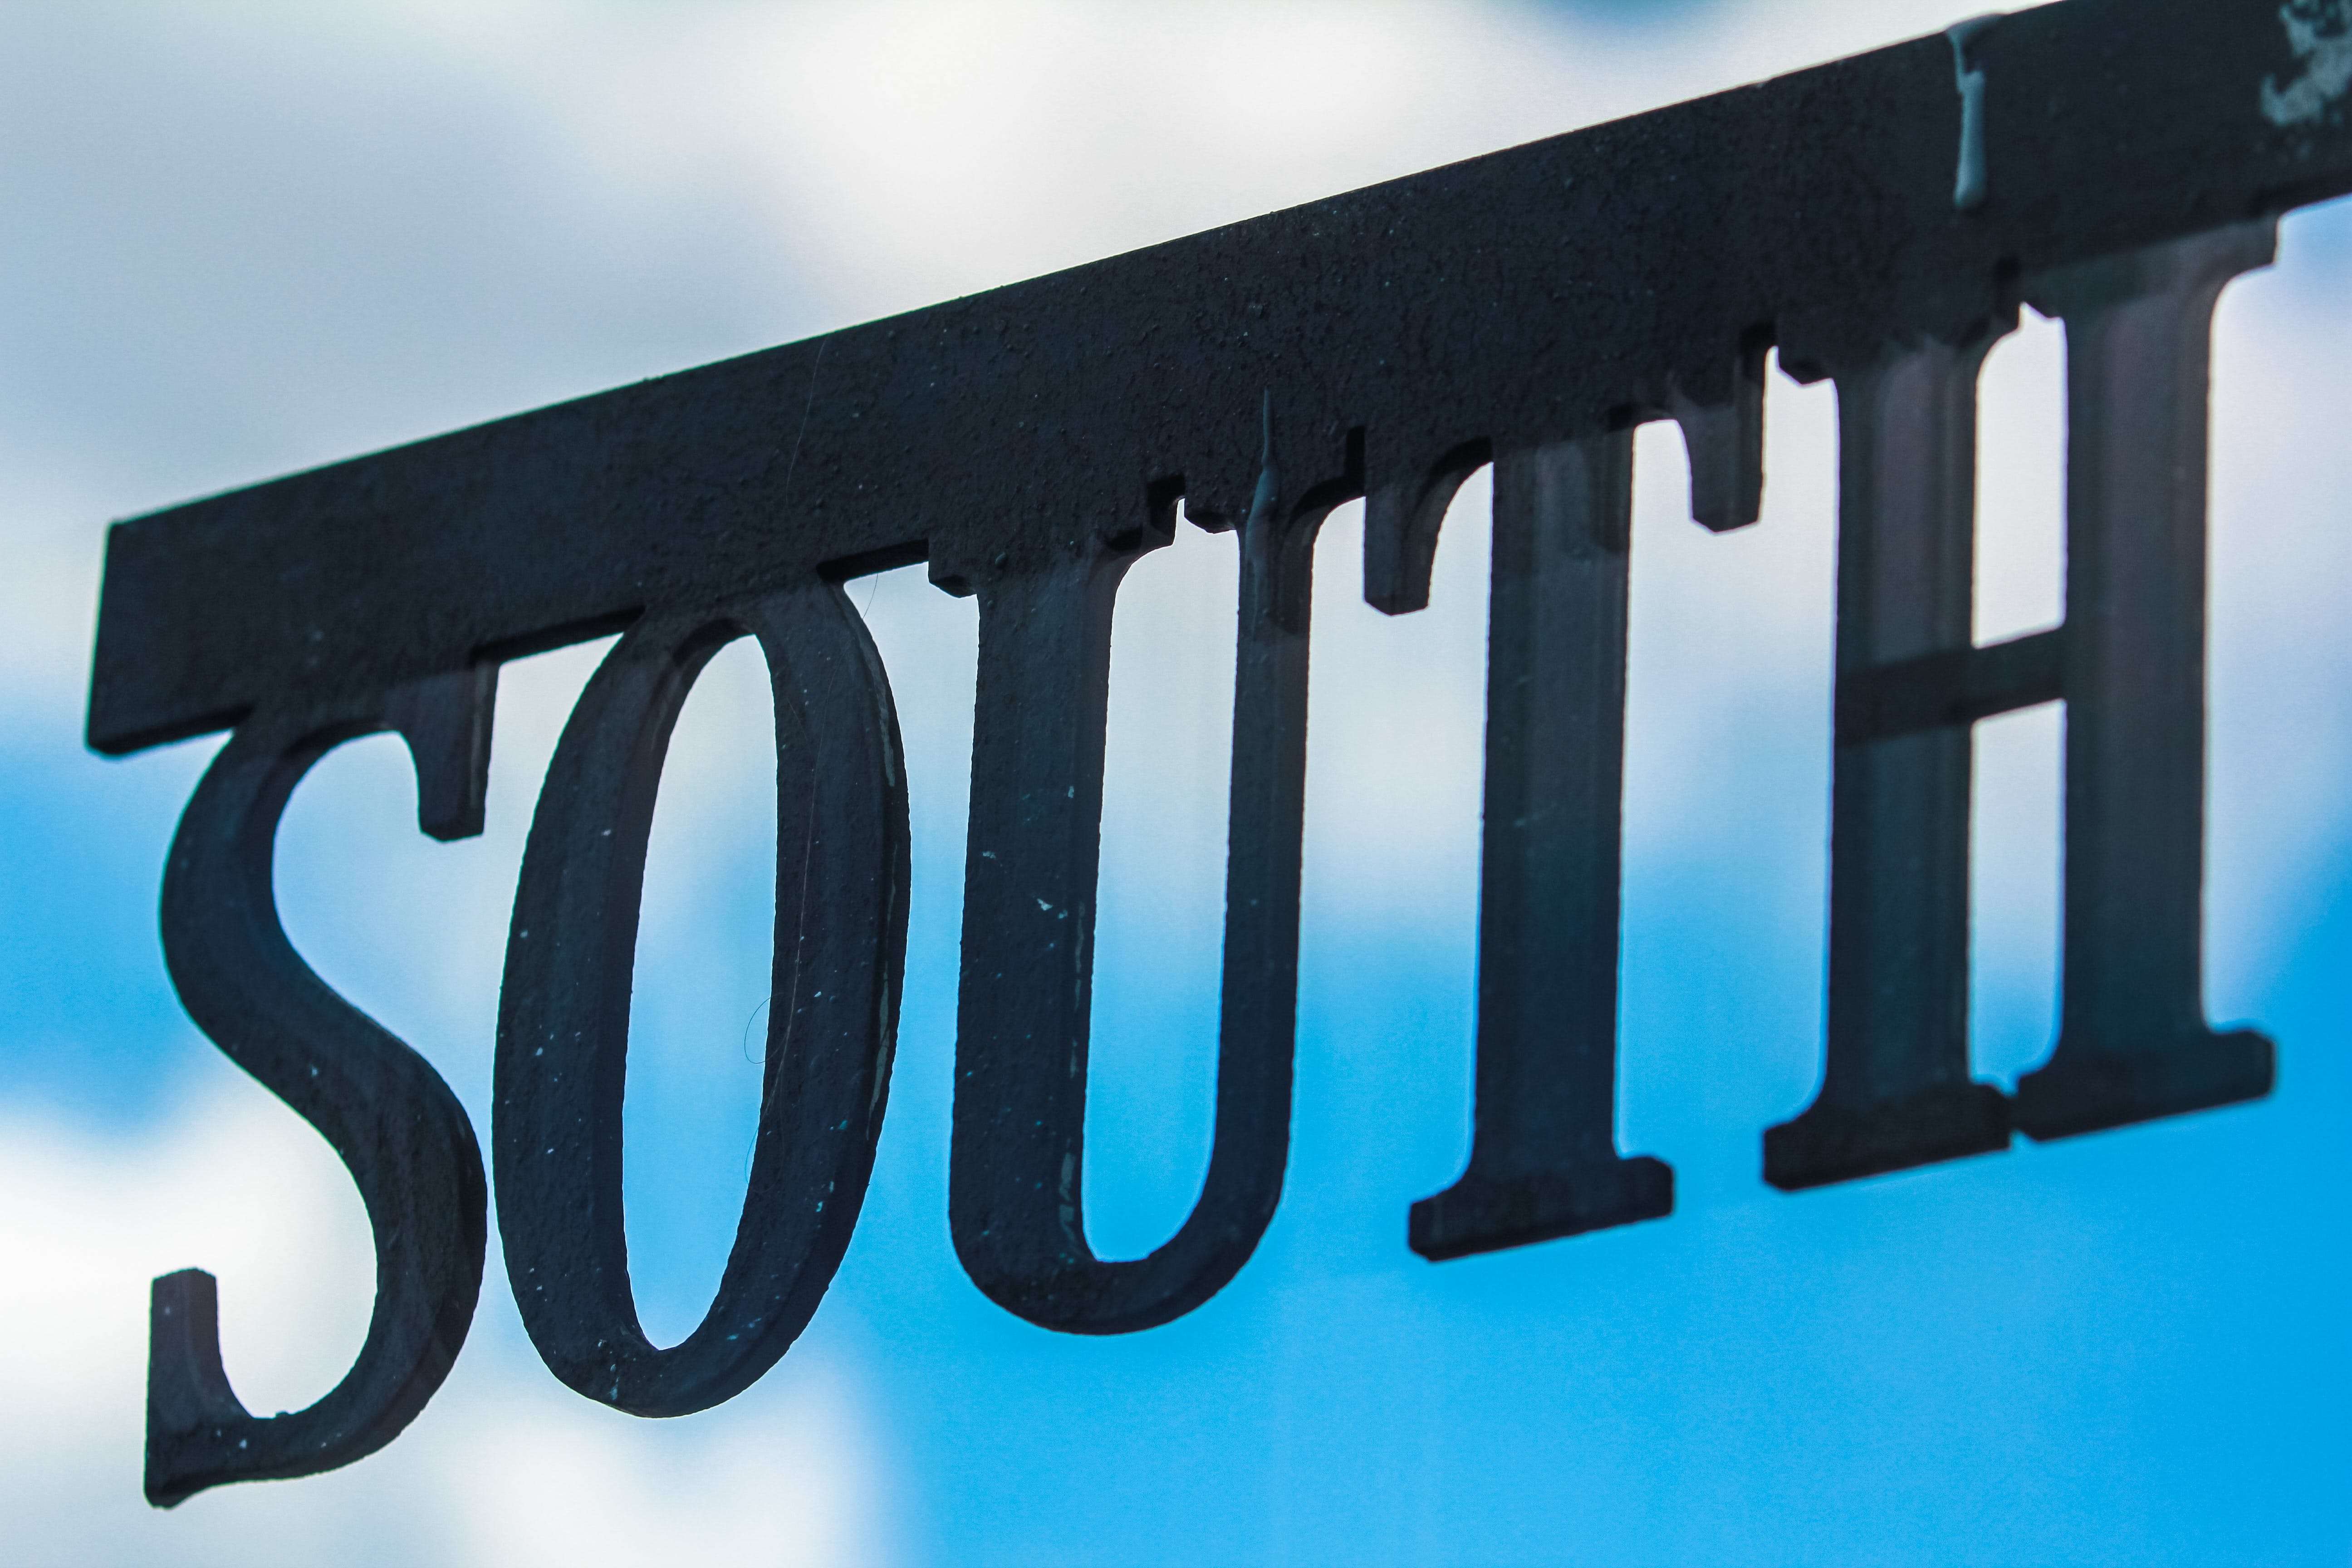 Selective Focus Photography of Black South Signage